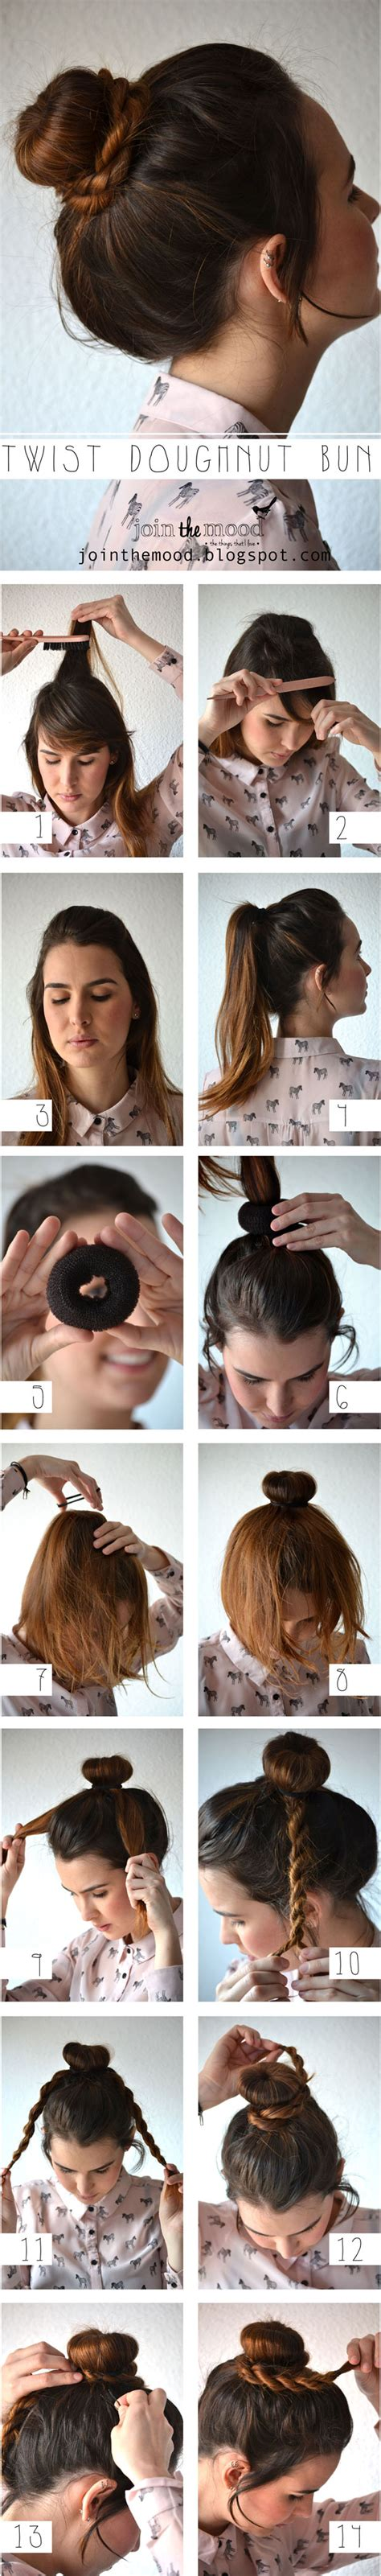 super easy step by step hairstyle ideas fashionsy com super easy step by step hairstyle ideas fashionsy com